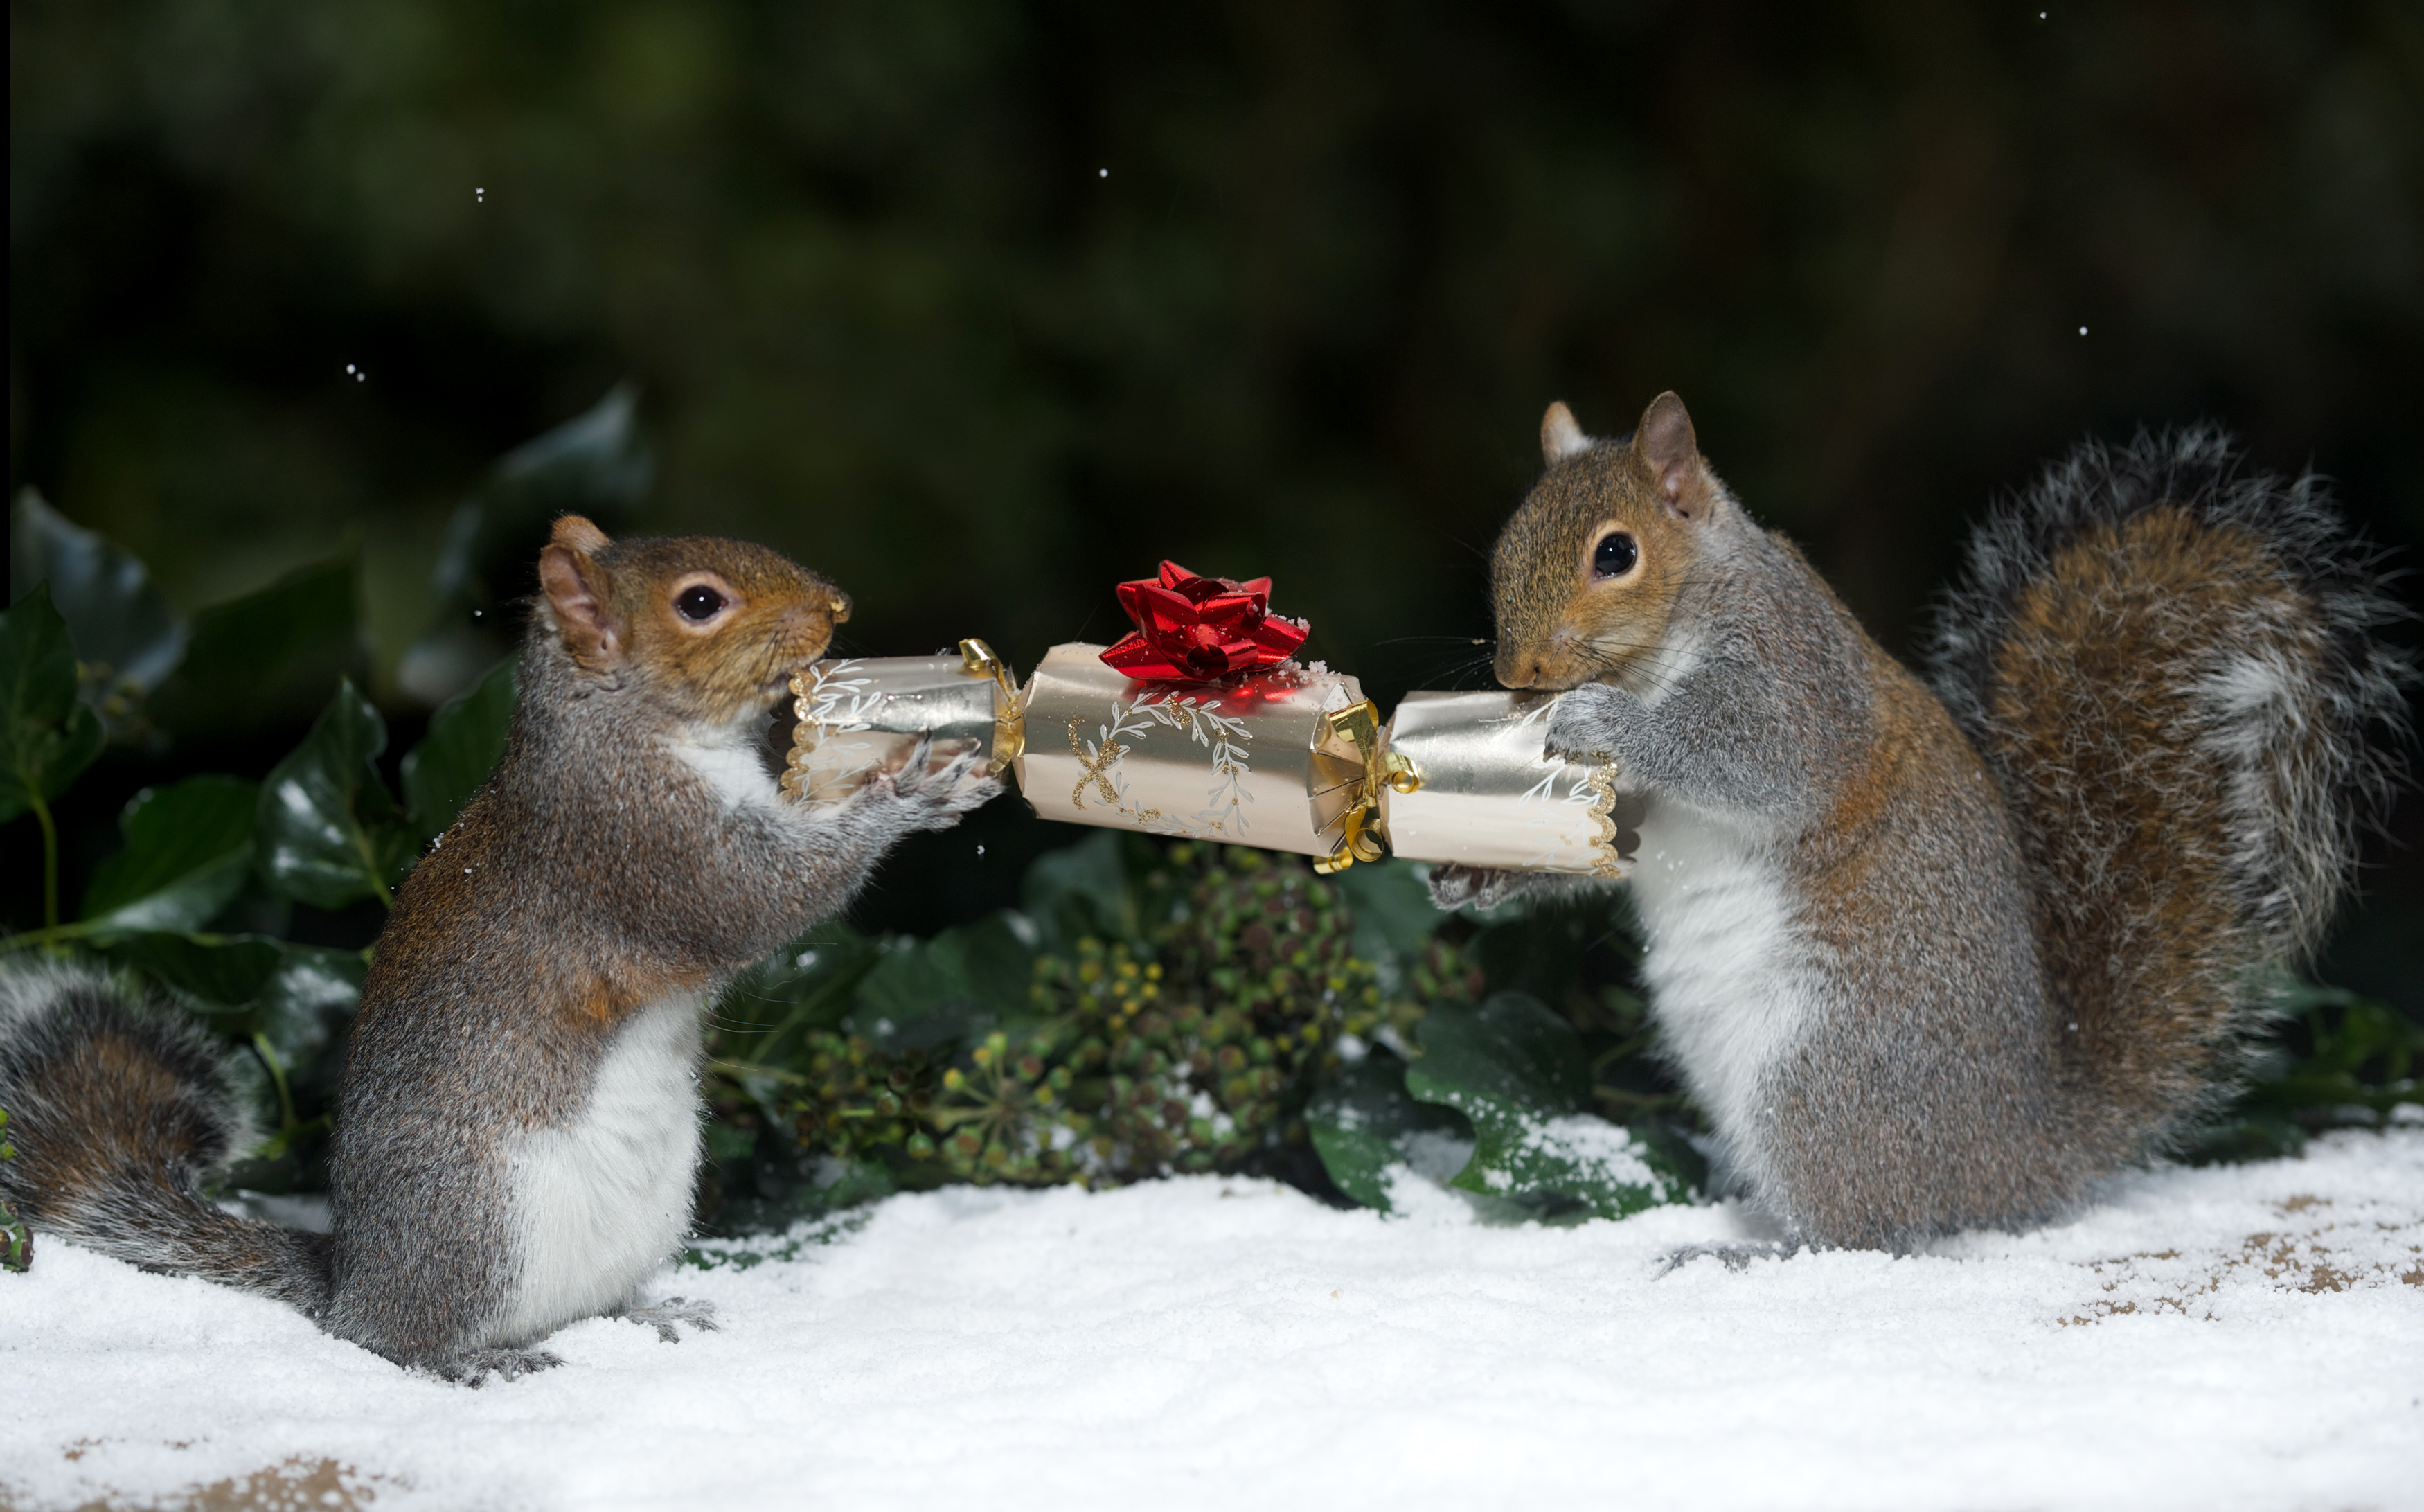 Squirrels go nuts for christmas pulling crackers and stealing decorations caters news agency - Squirrel nut crackers ...